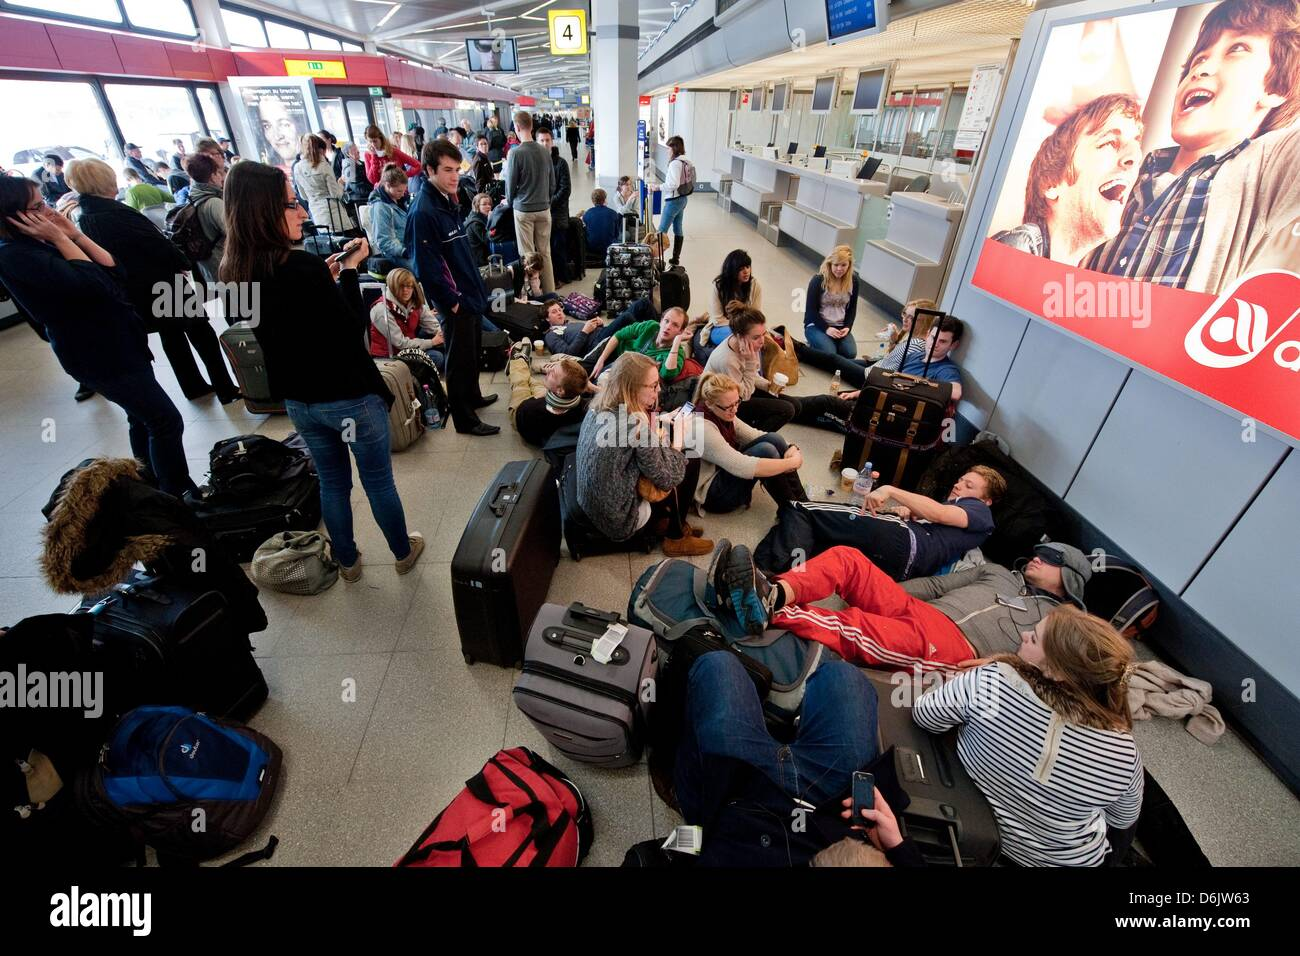 People wait for their flights during a warning strike at tegel